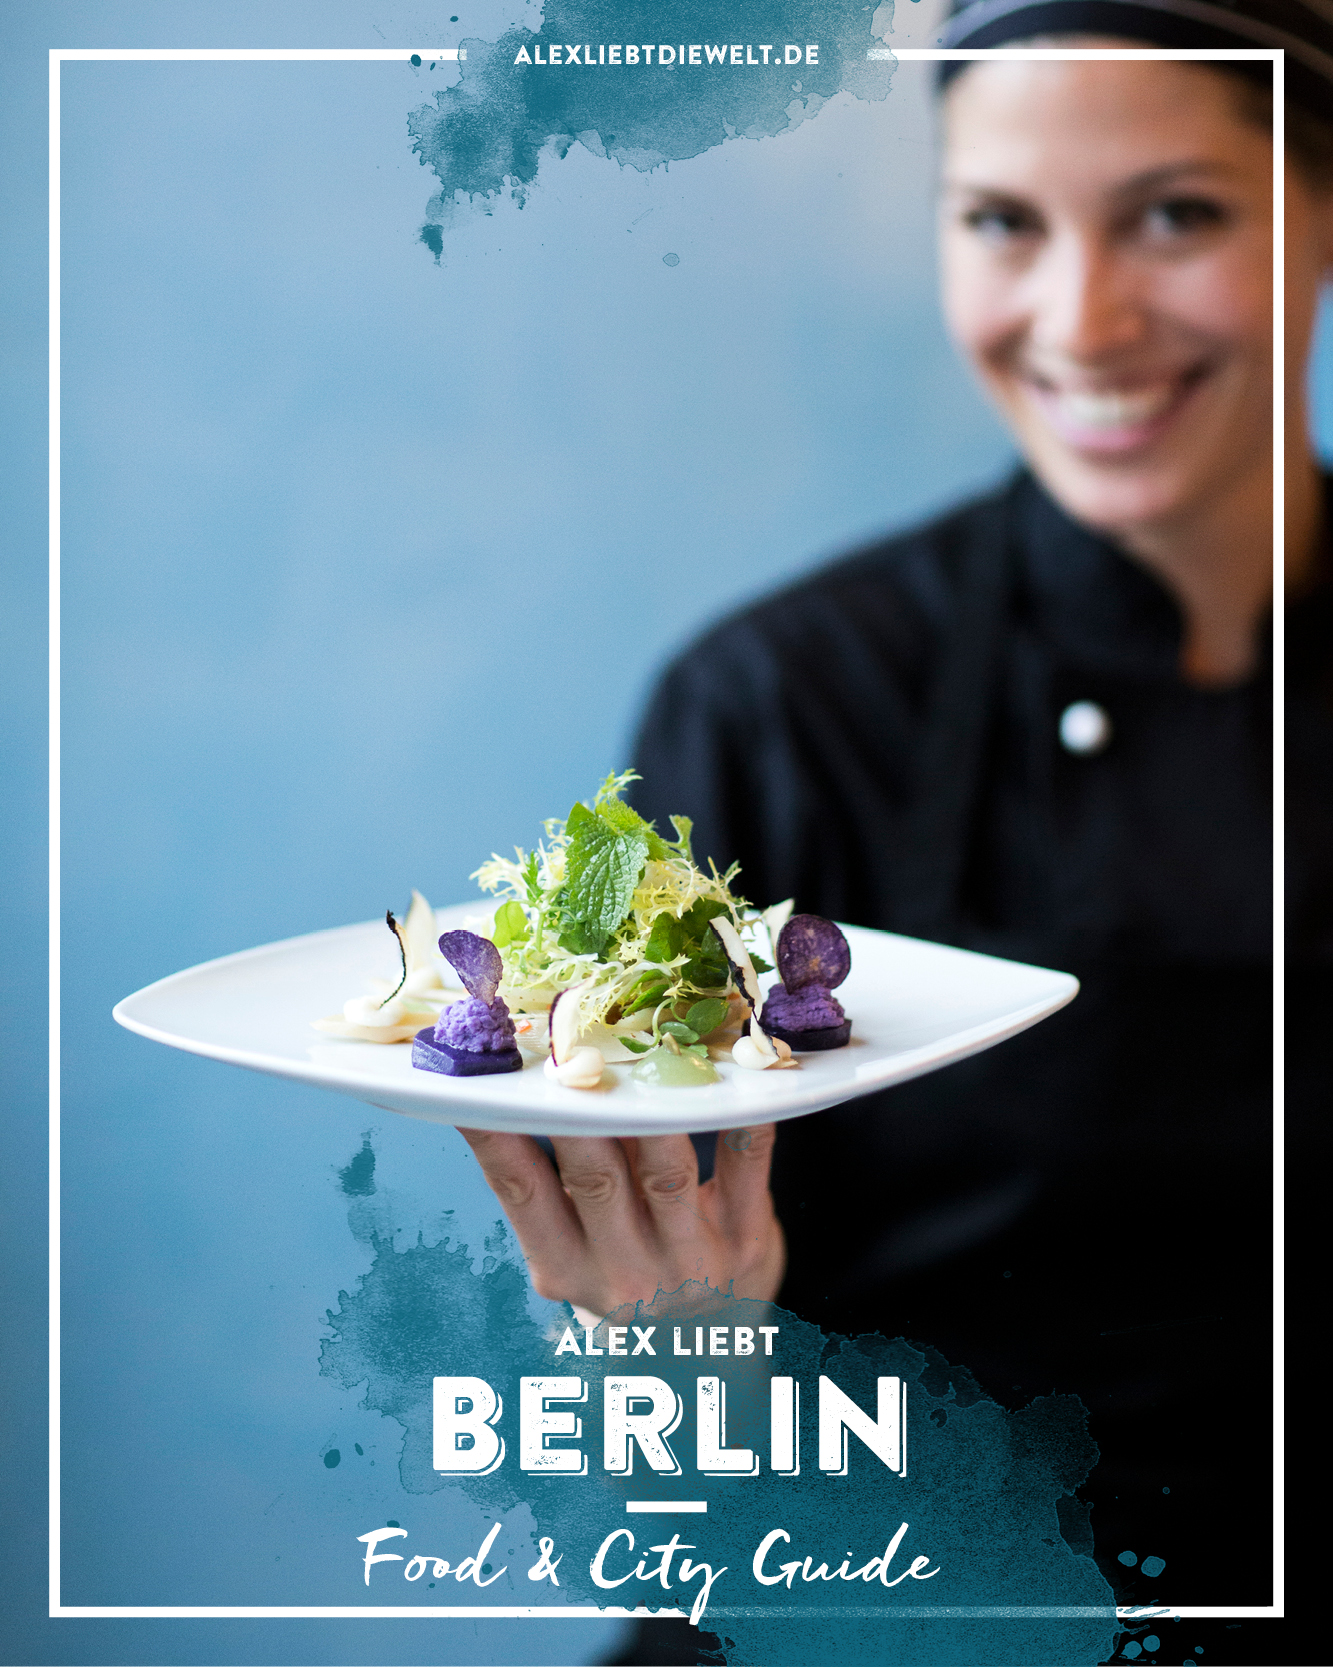 Alex liebt Berlin – Food & City Guide: Salat im Restaurant Kopps